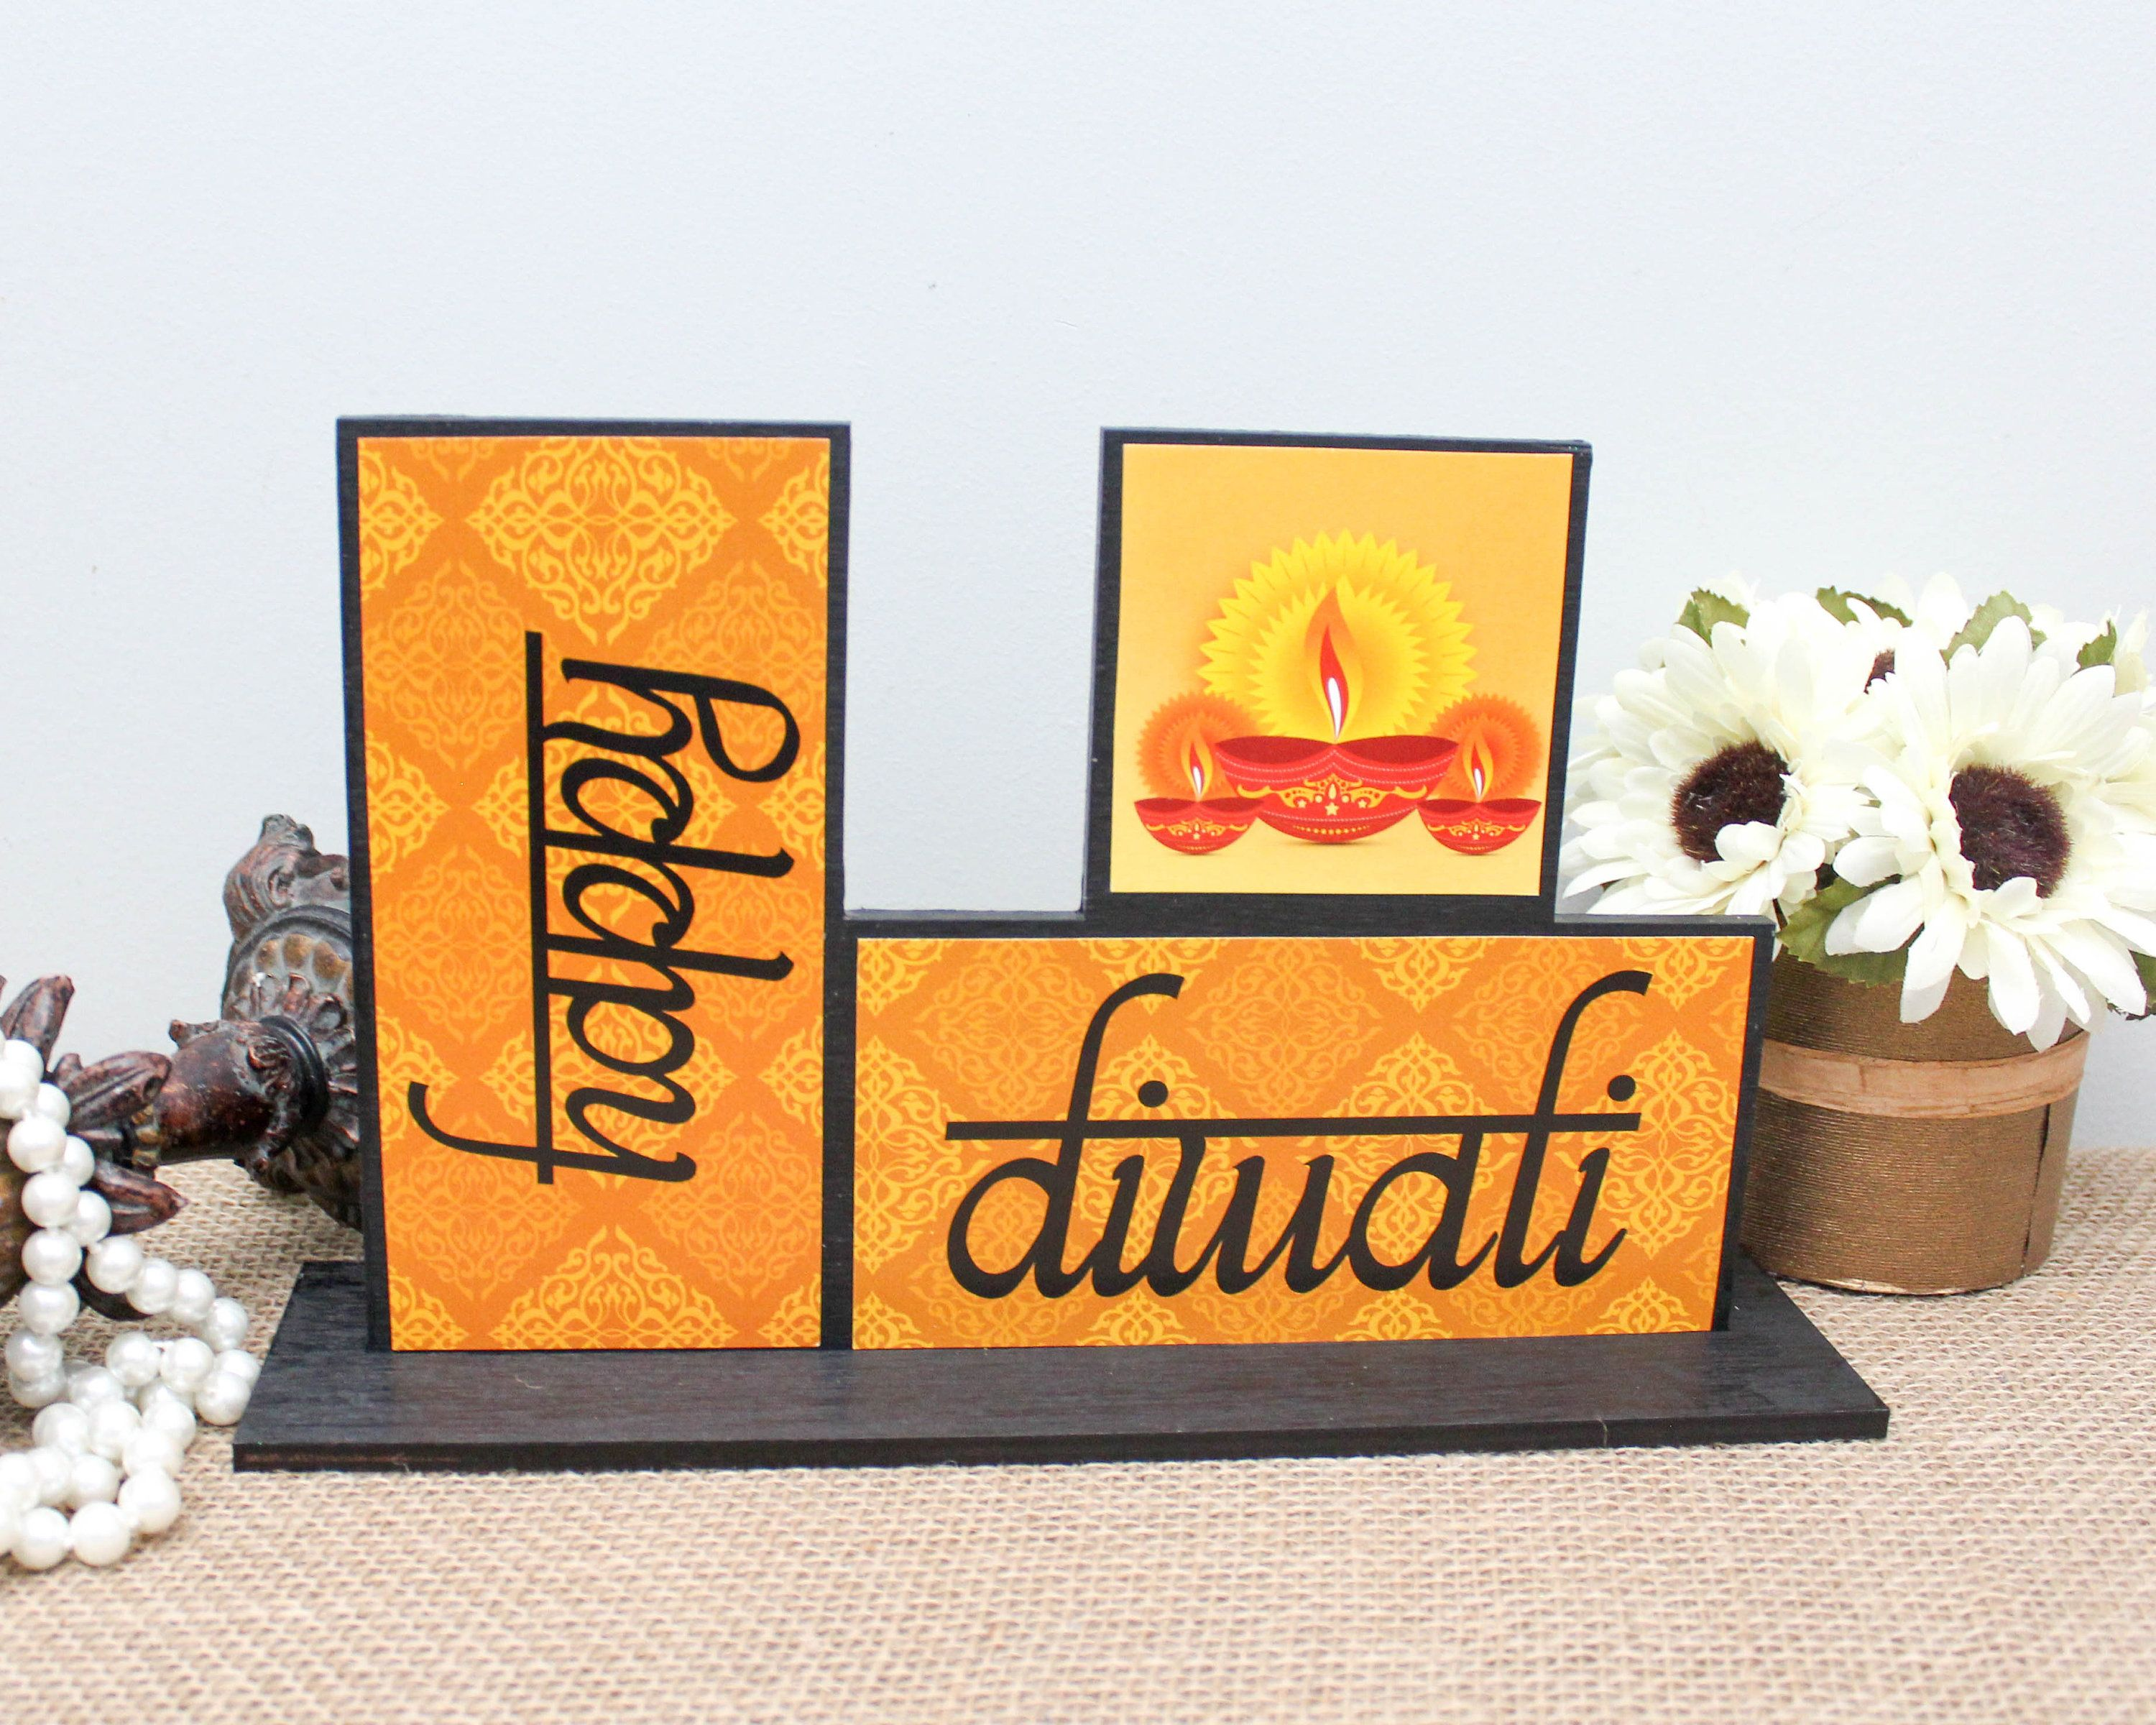 Happy Diwali Decoration, Diwali Decor, Diwali Hostess Gift, Deepavali Gift for Kids, Hindu Festival of Lights, Indian Home Decor